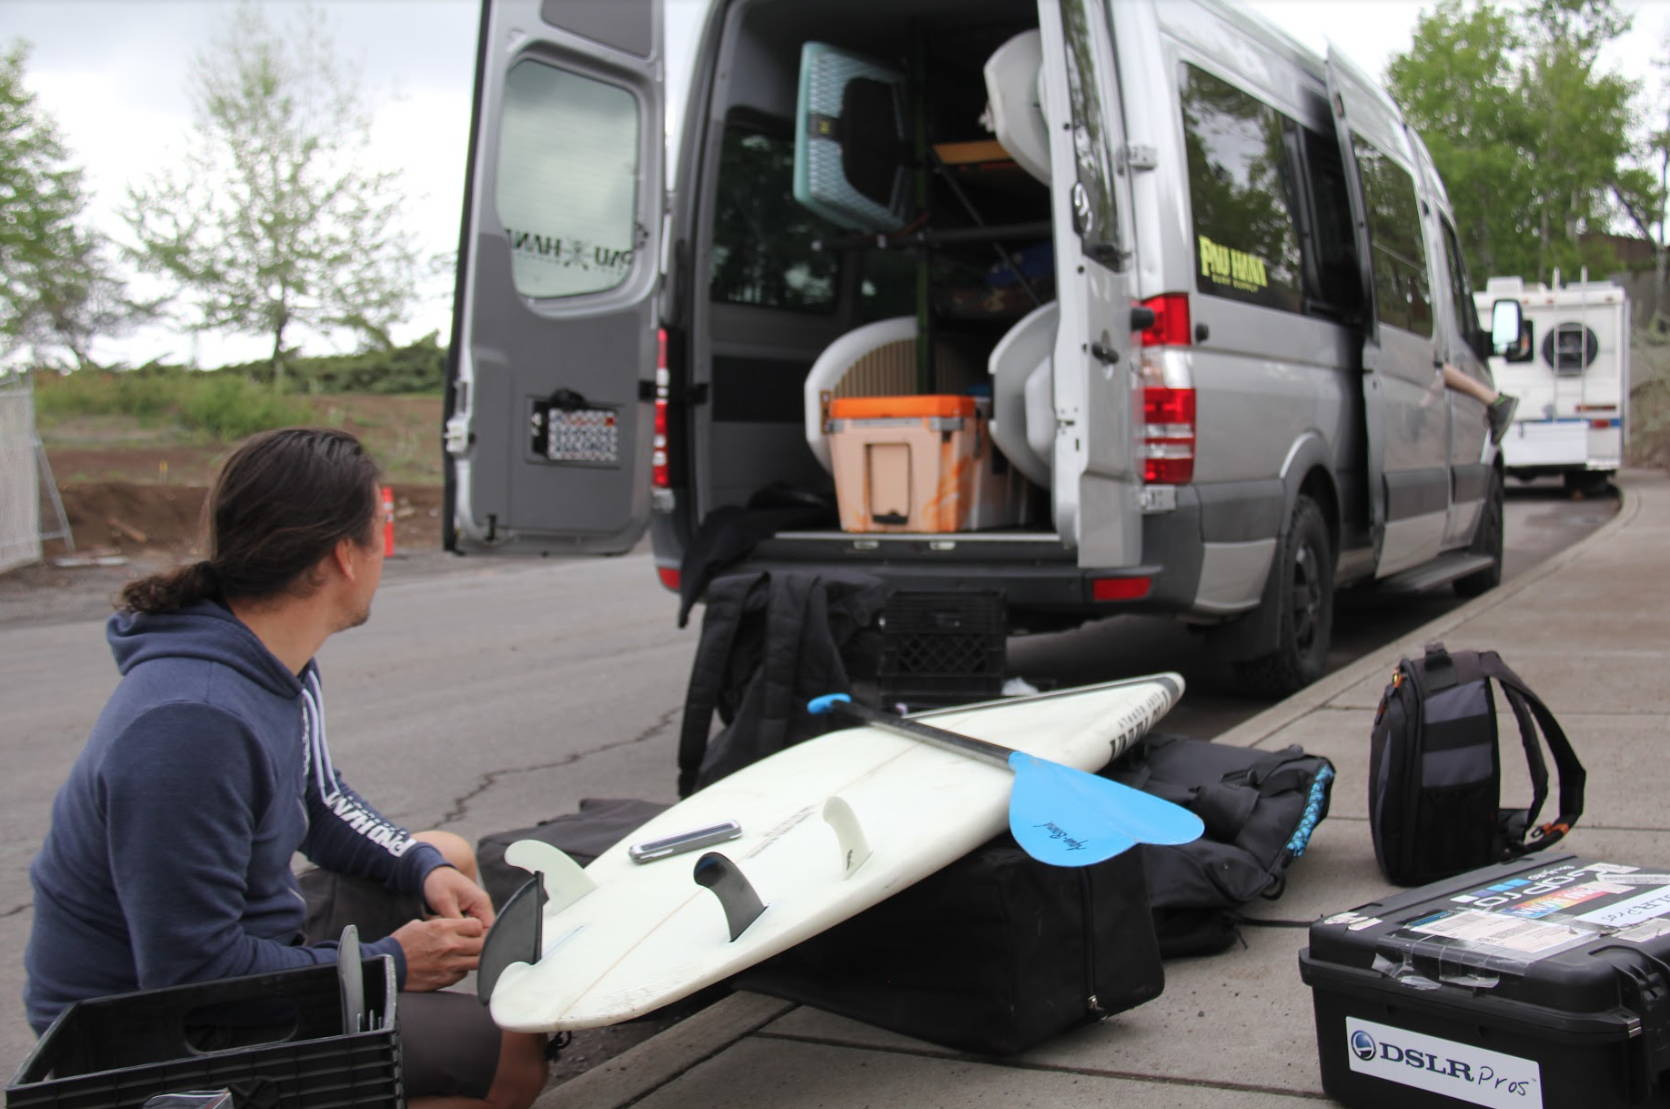 Todd loading up the Pau Hana surf supply van with carve boards and paddles to surf on the white water wave